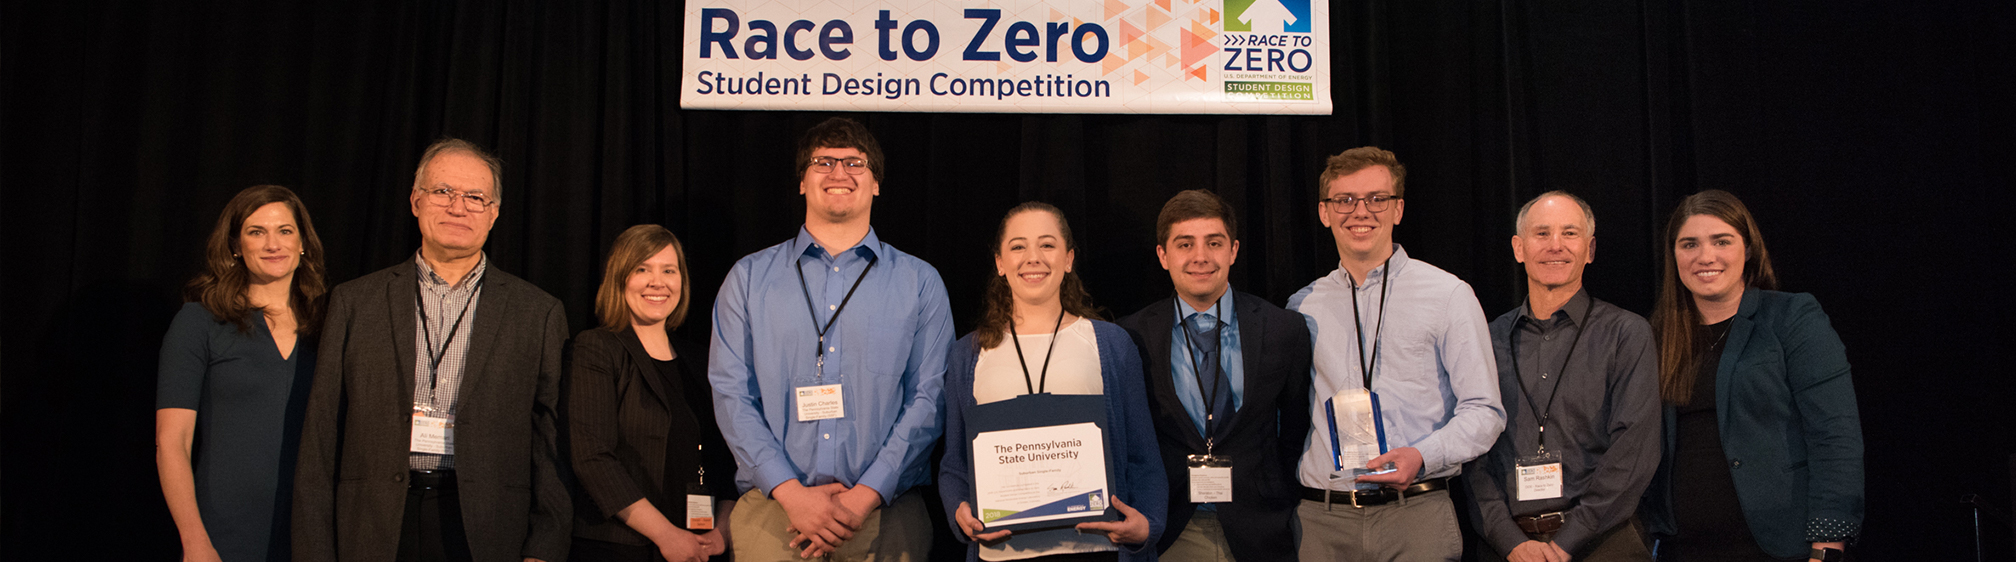 2018 Race to Zero team winning first place